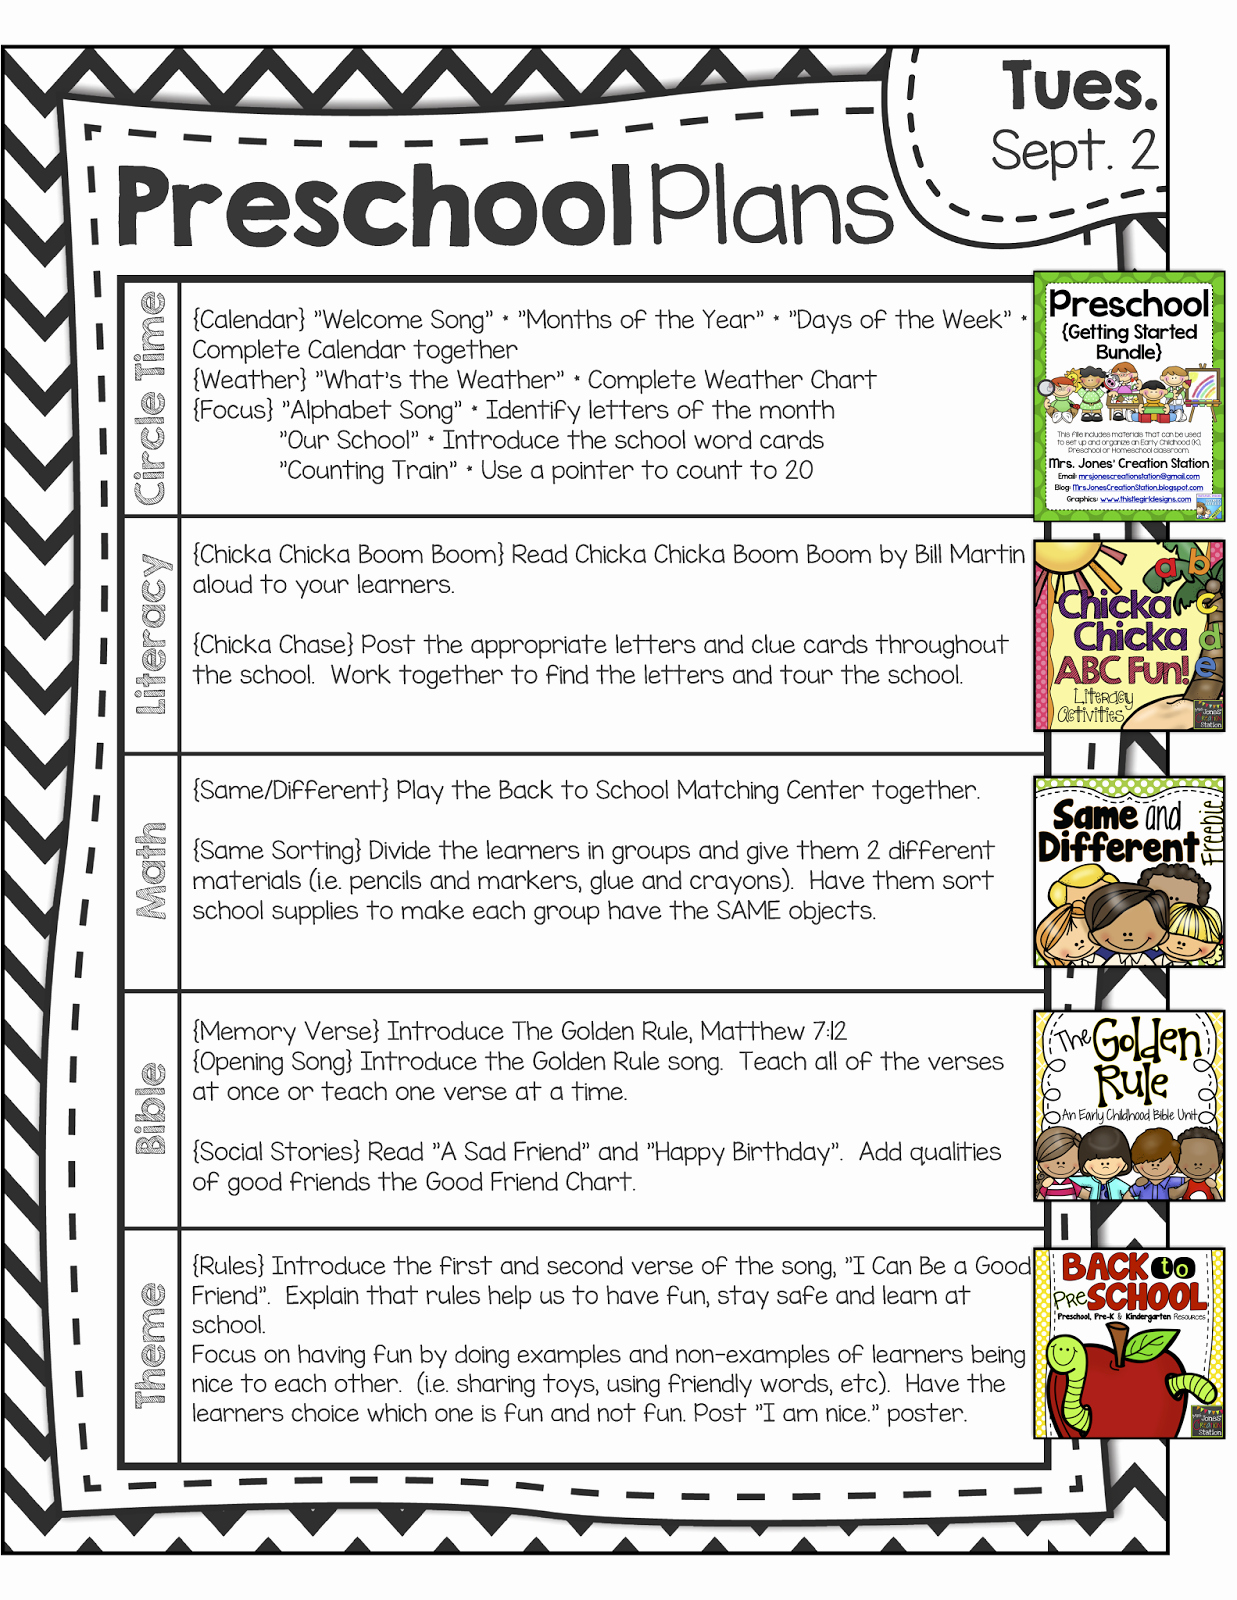 Pre Kindergarten Lesson Plan Template New Windows 10 Product Activation Keys All Versions